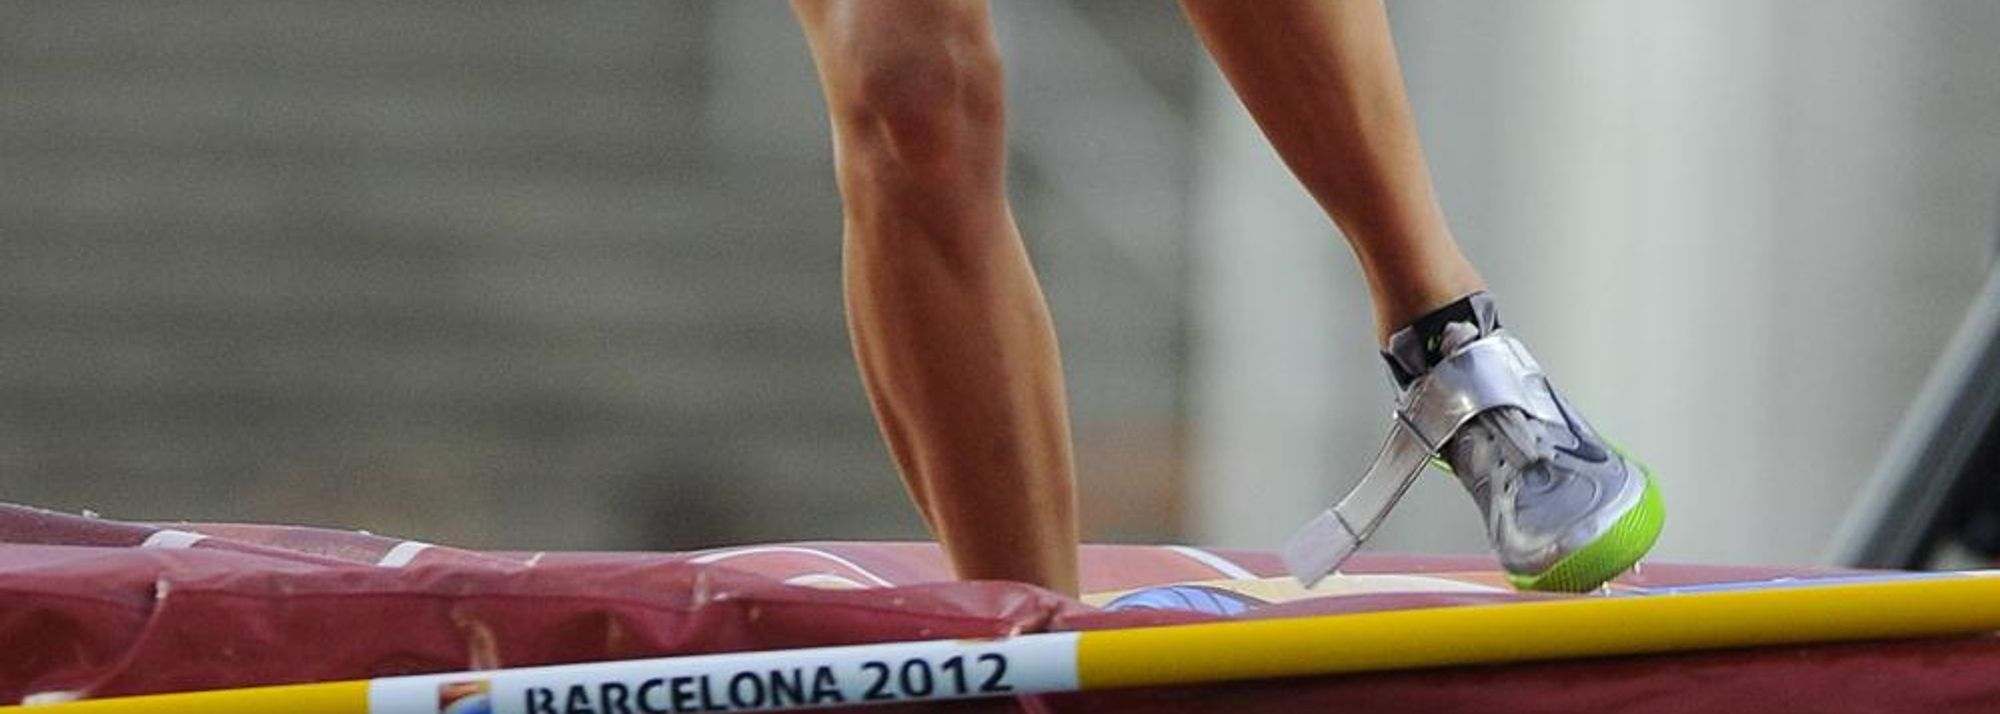 High jumper Alessia Trost made hard work of getting her expected gold medal with a competition littered with failures but eventually the tall, elegant Italian prevailed as the only women to go over 1.91m at the IAAF World Junior Championships on Sunday (15).